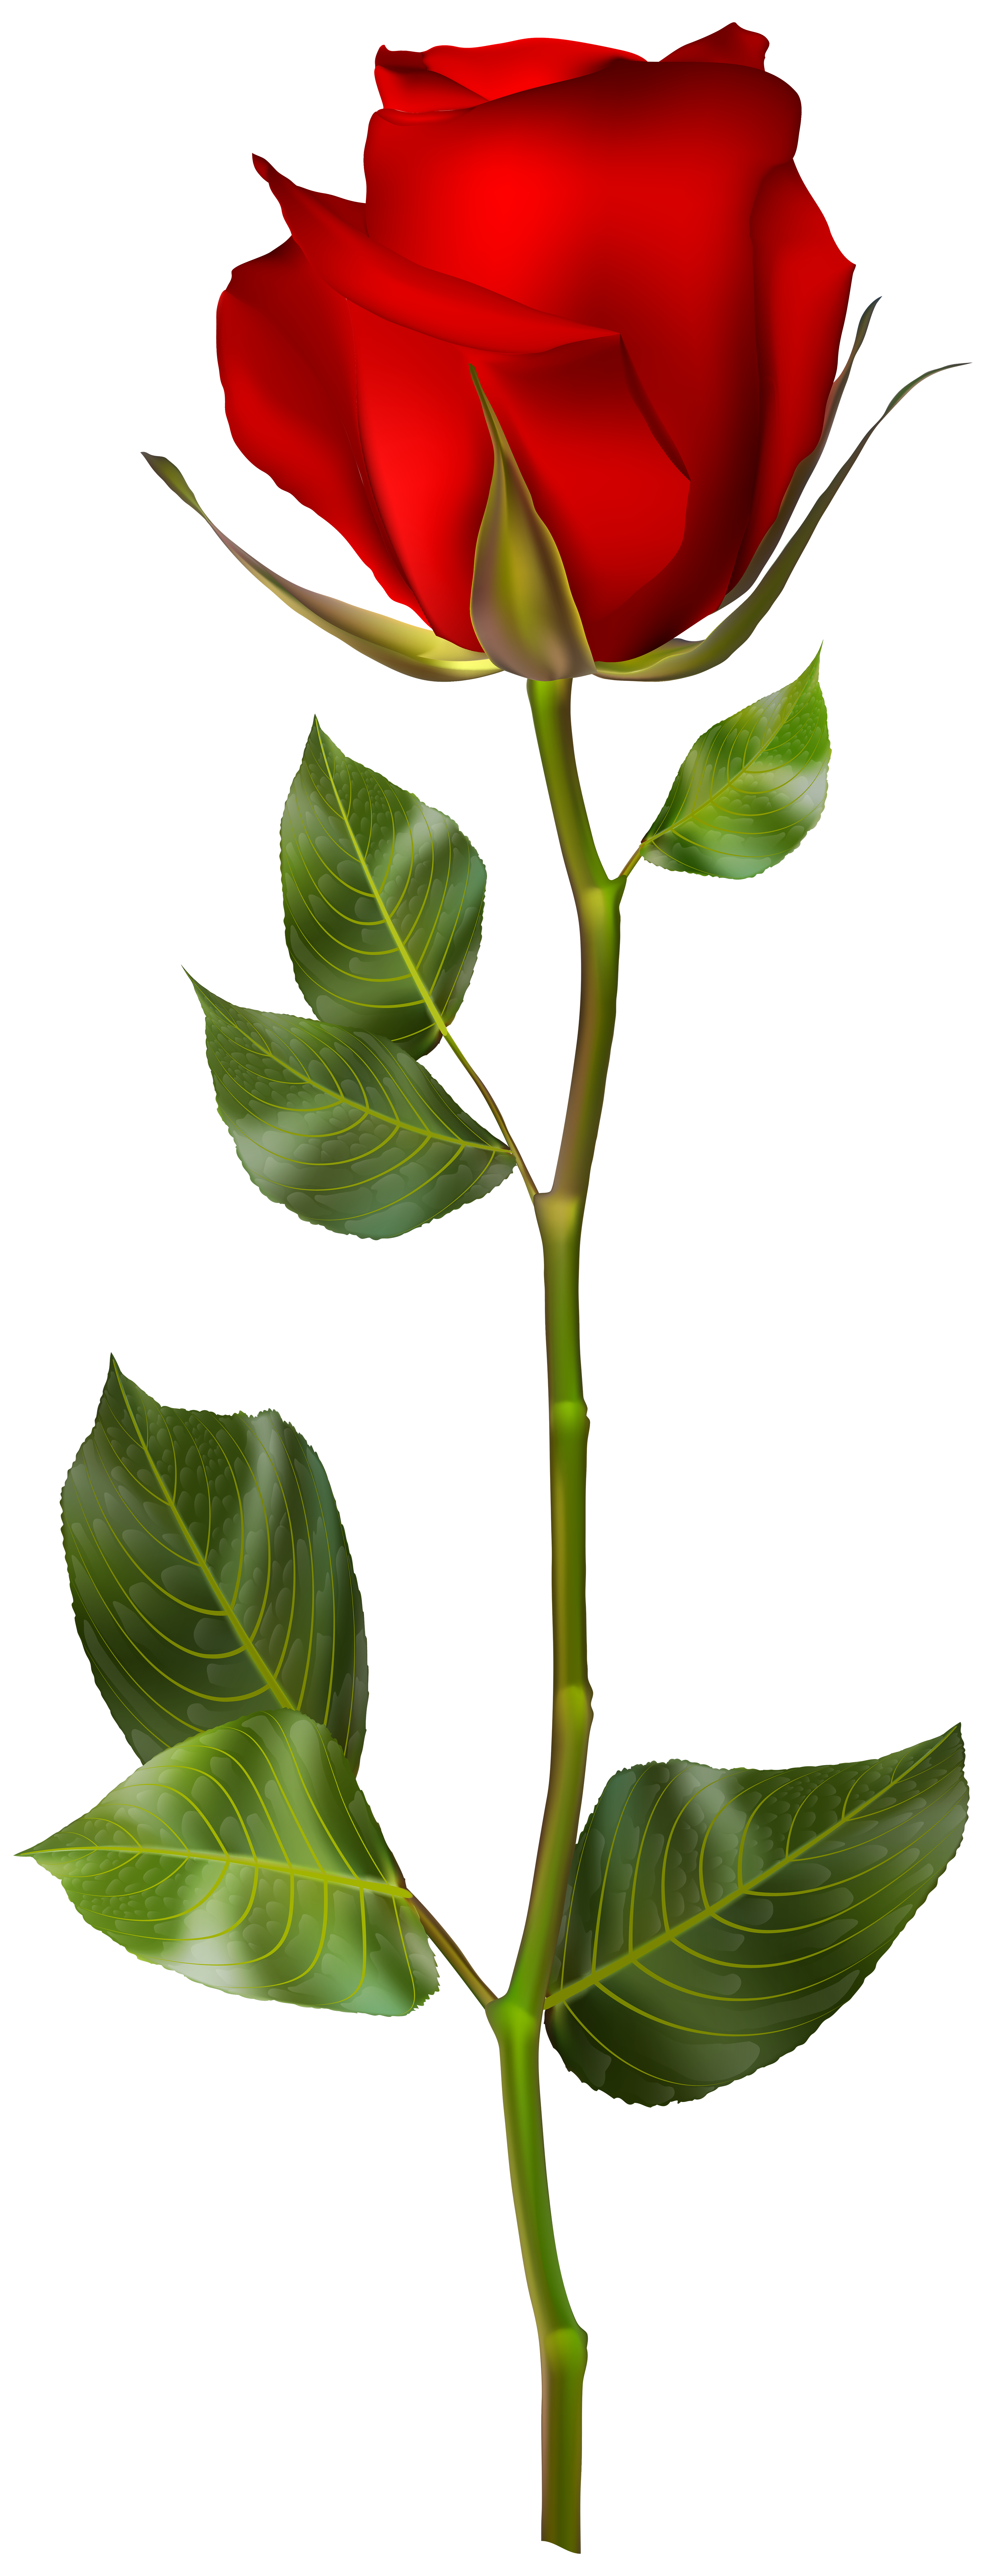 Rose Bud Clipart Free Download Best Rose Bud Clipart On Clipartmag Com